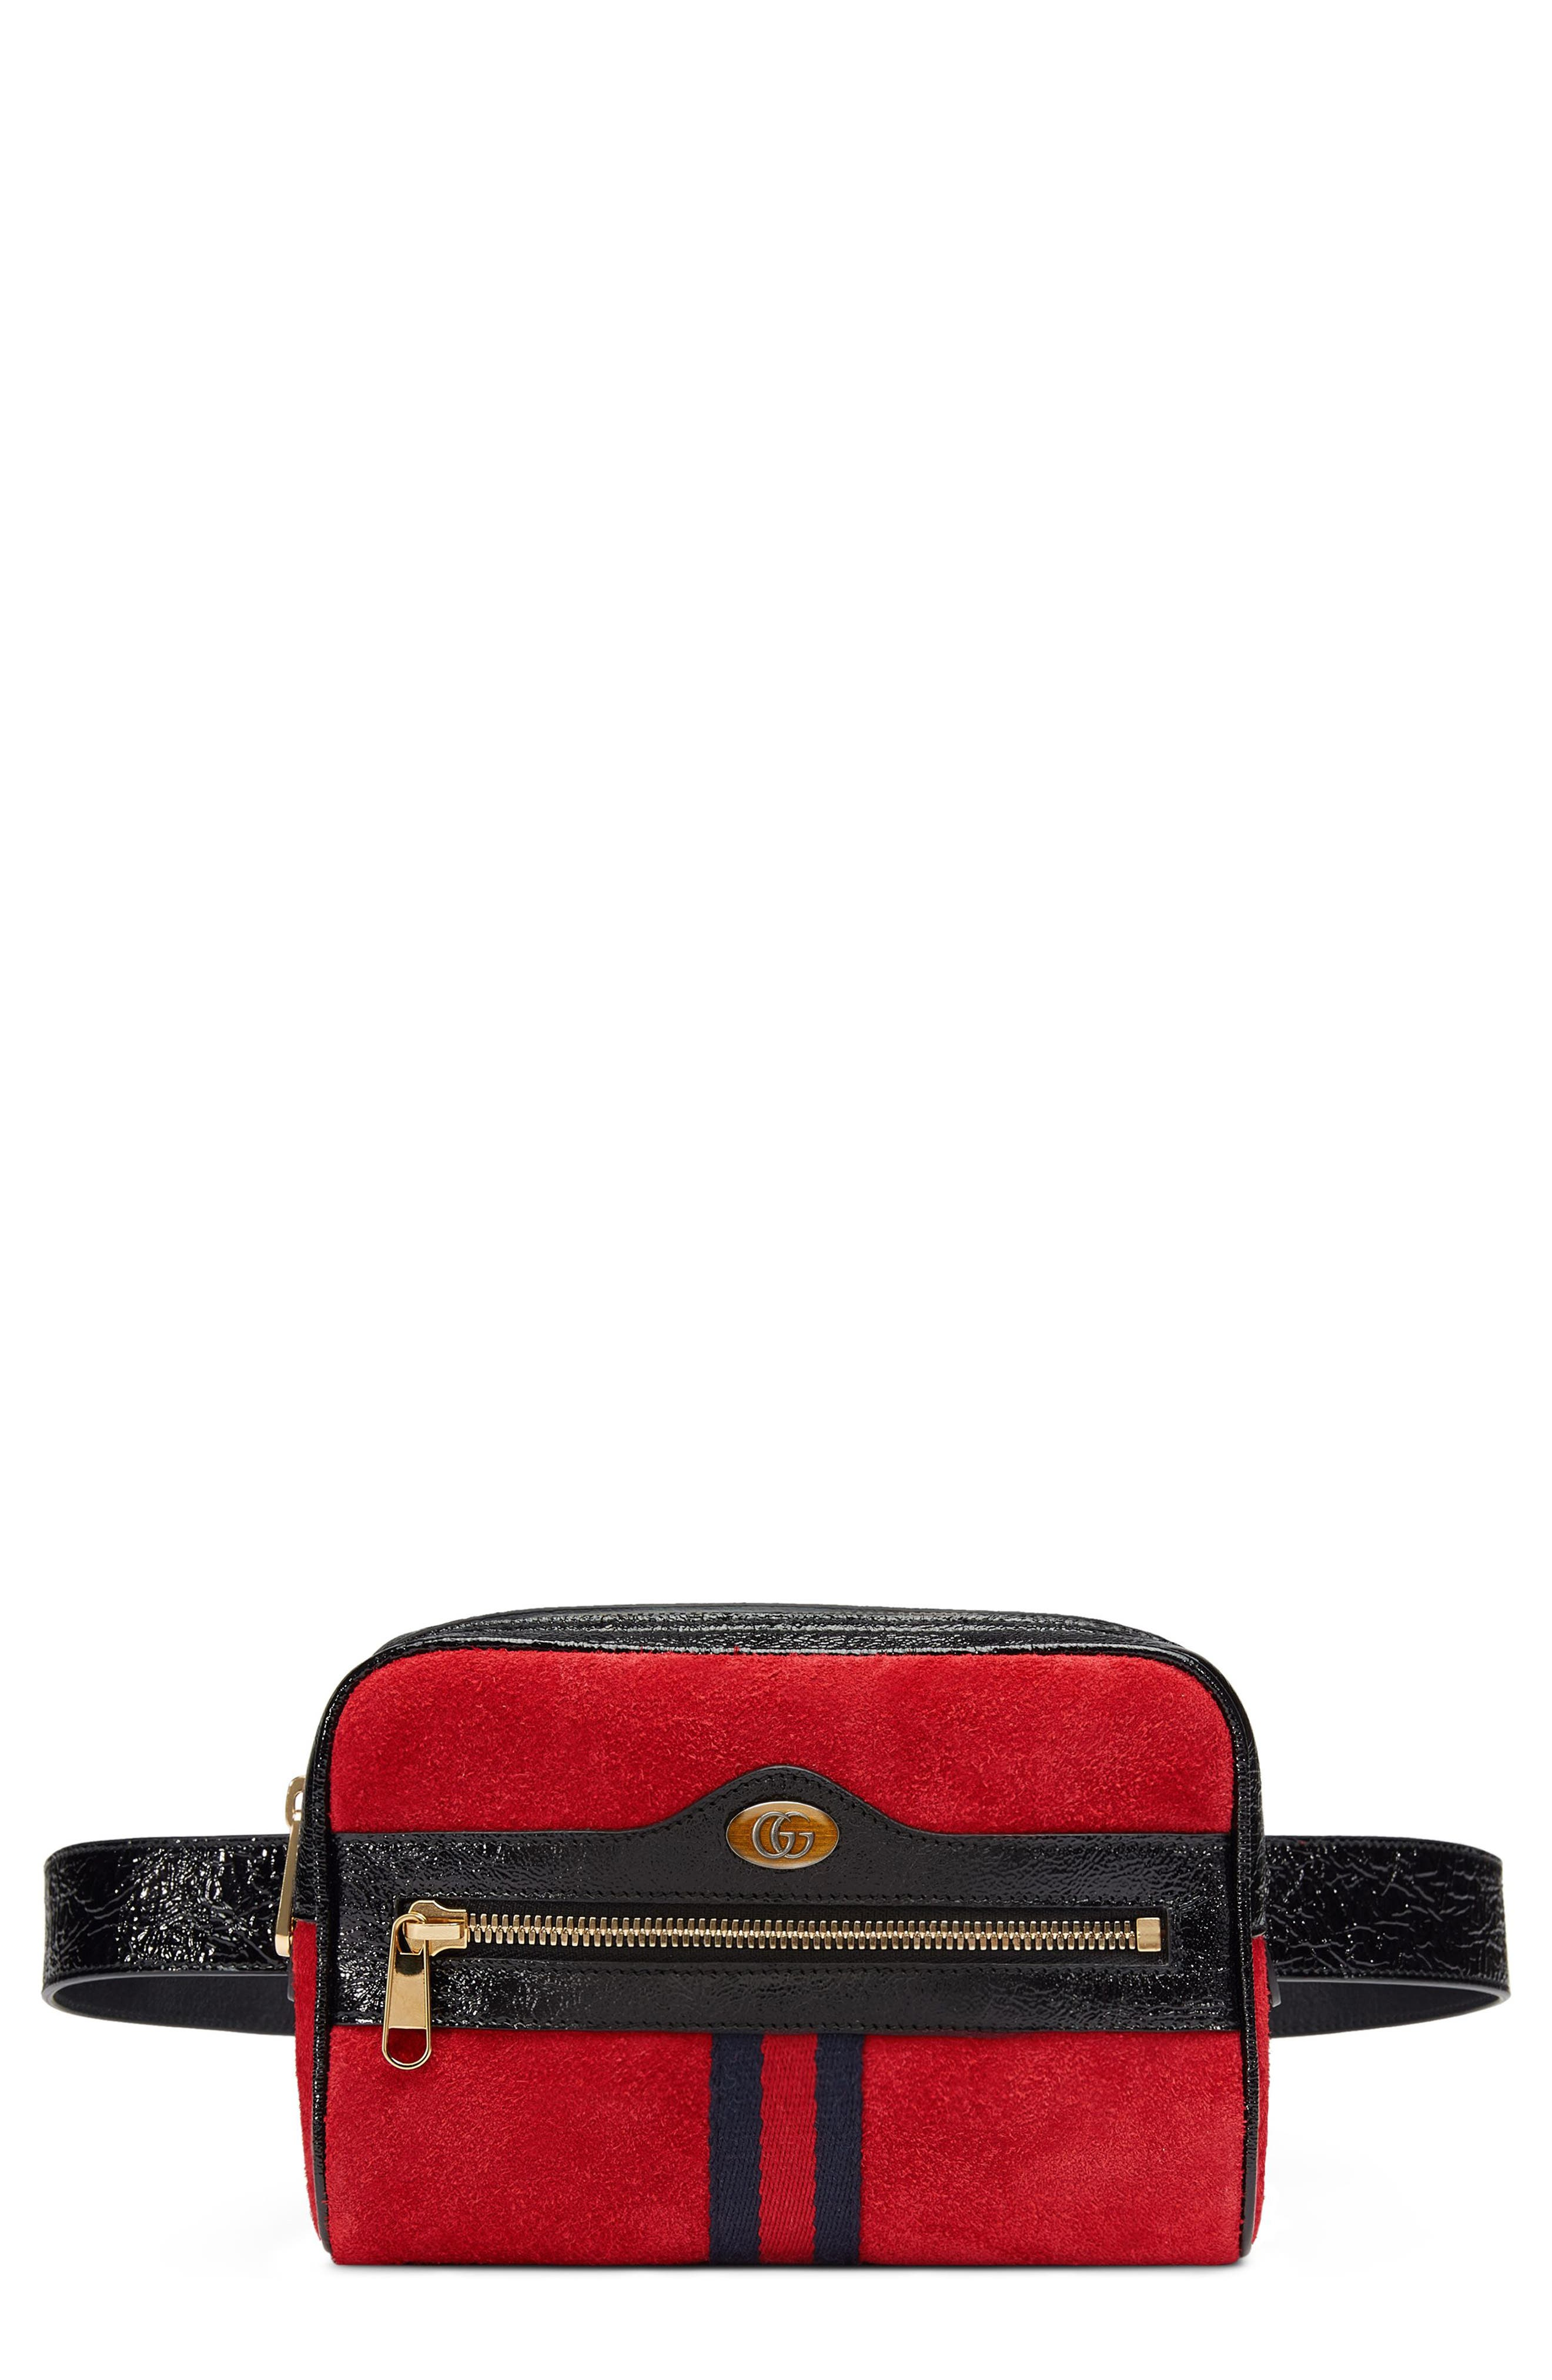 Ophidia Small Suede Belt Bag,                         Main,                         color, Hibiscus Red/ Nero/ Blue